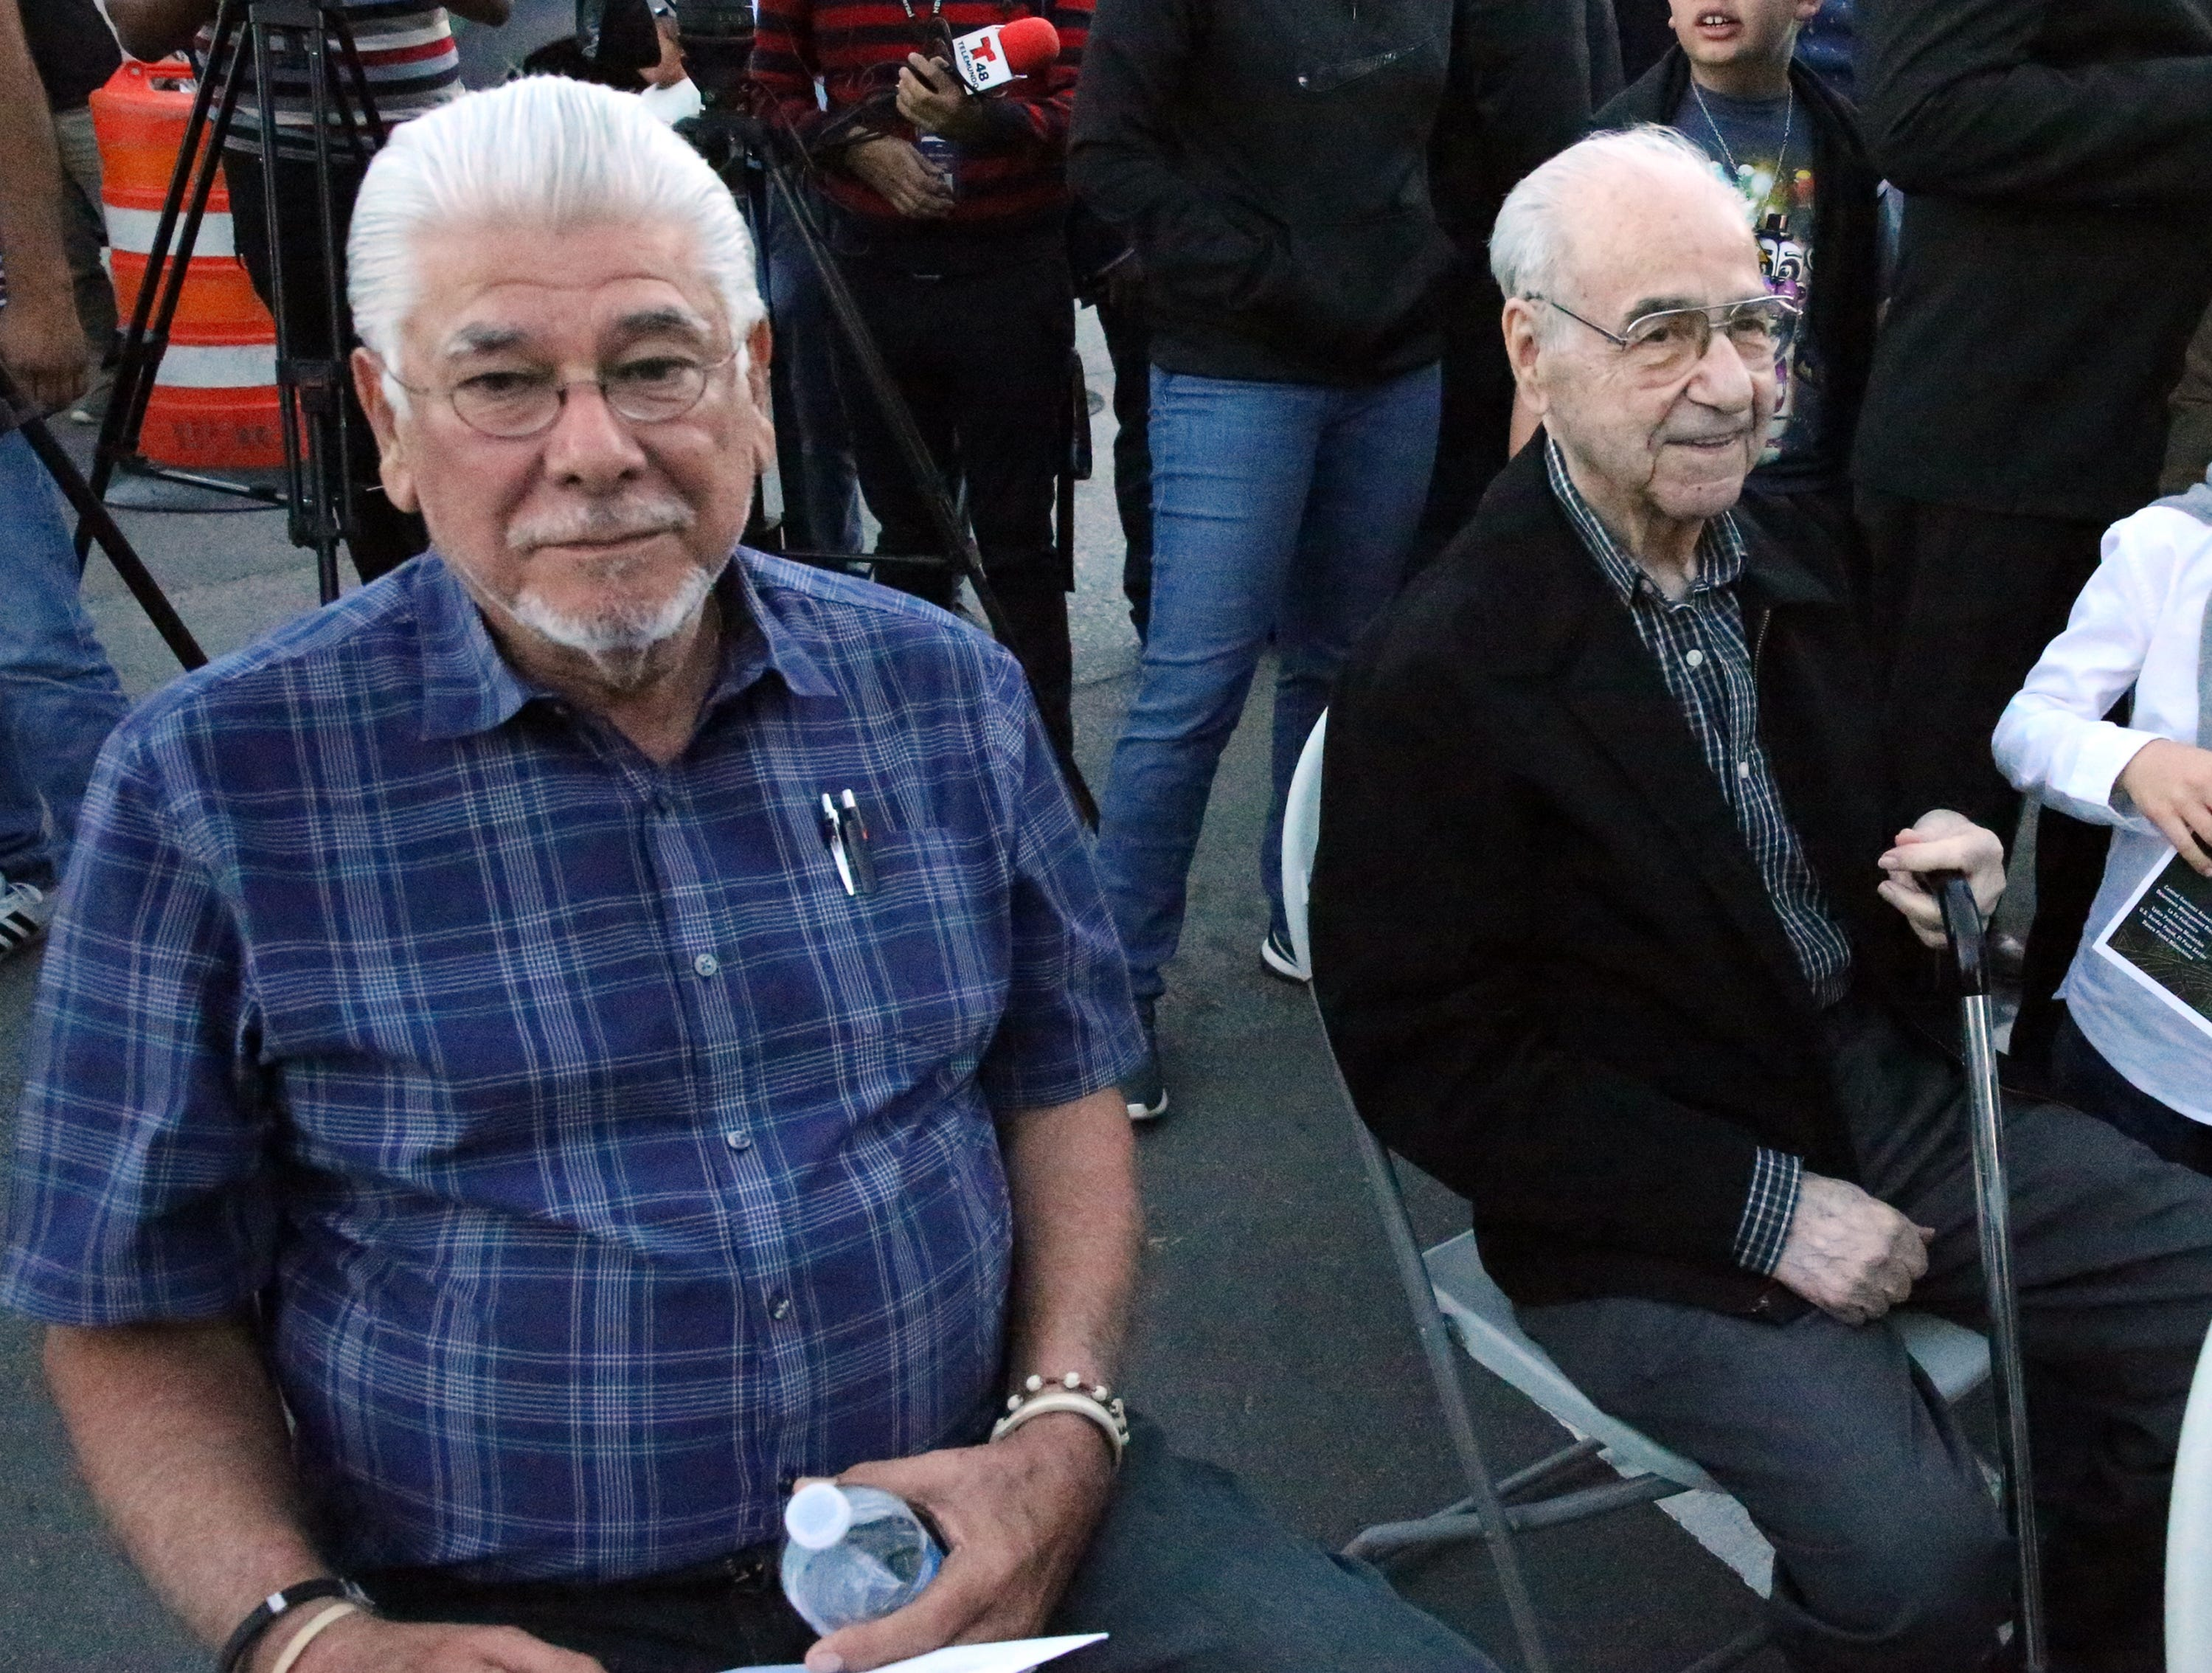 Long time El Paso businessmen Cesar Viramontes, left, and George Salom Sr. at the grand opening for the Paso de Las Luces Wednesday night in South El Paso.